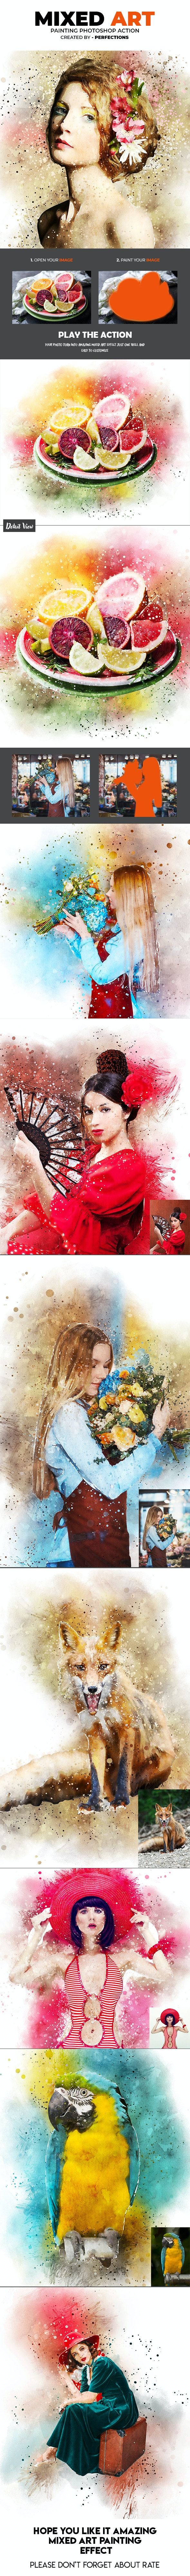 Mixed Art Painting Photoshop Action - Photo Effects Actions